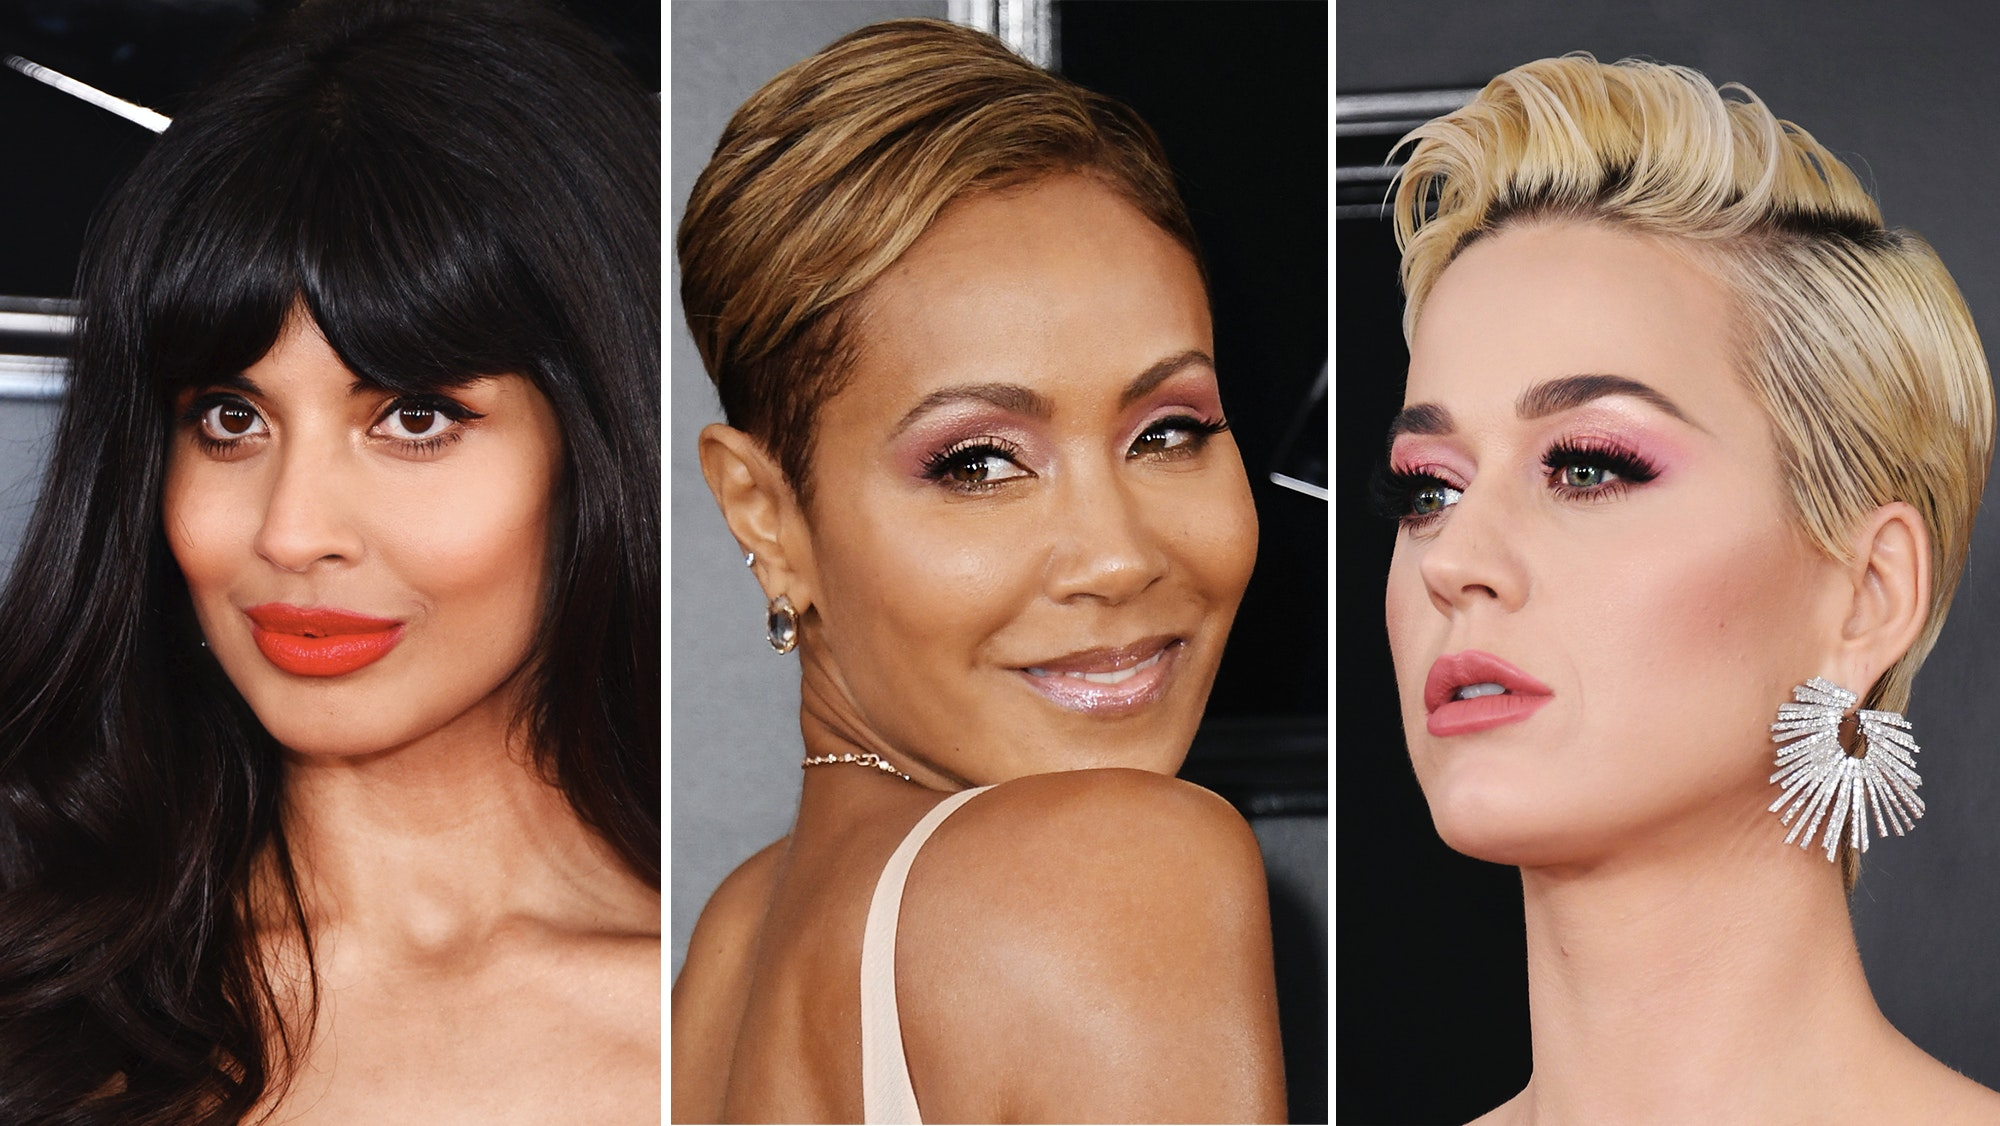 The Best Beauty Looks From the GRAMMYs Red Carpet 2019